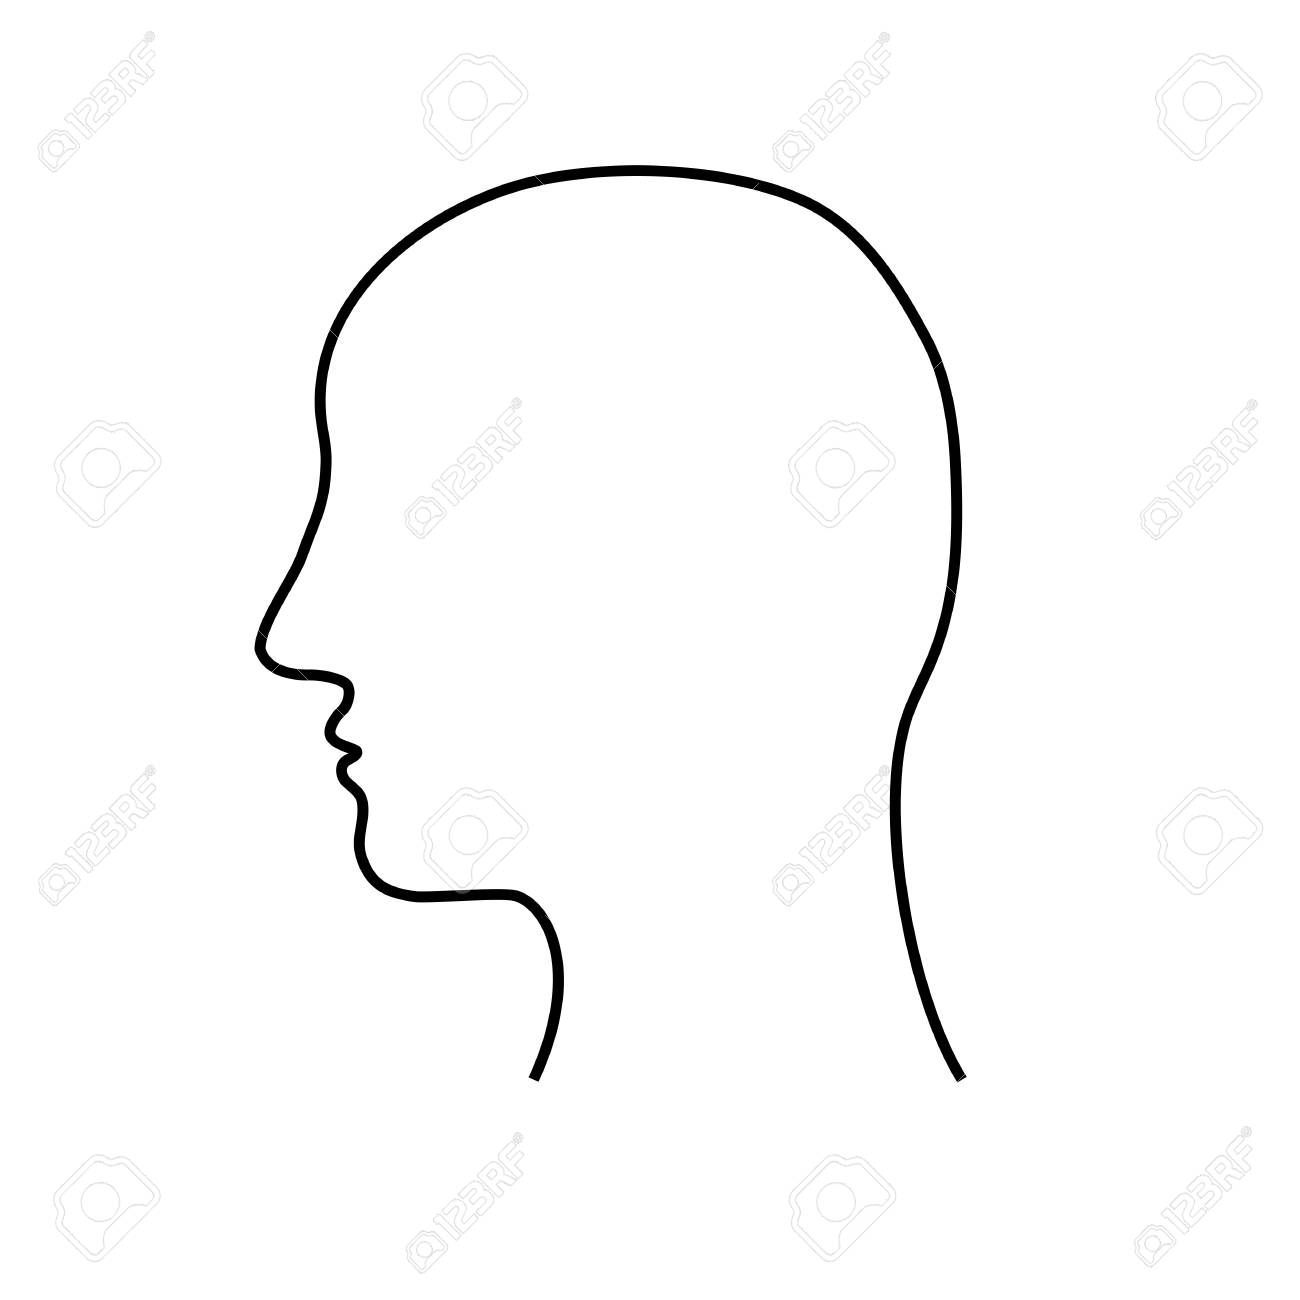 Empty mans head outline with no hair.